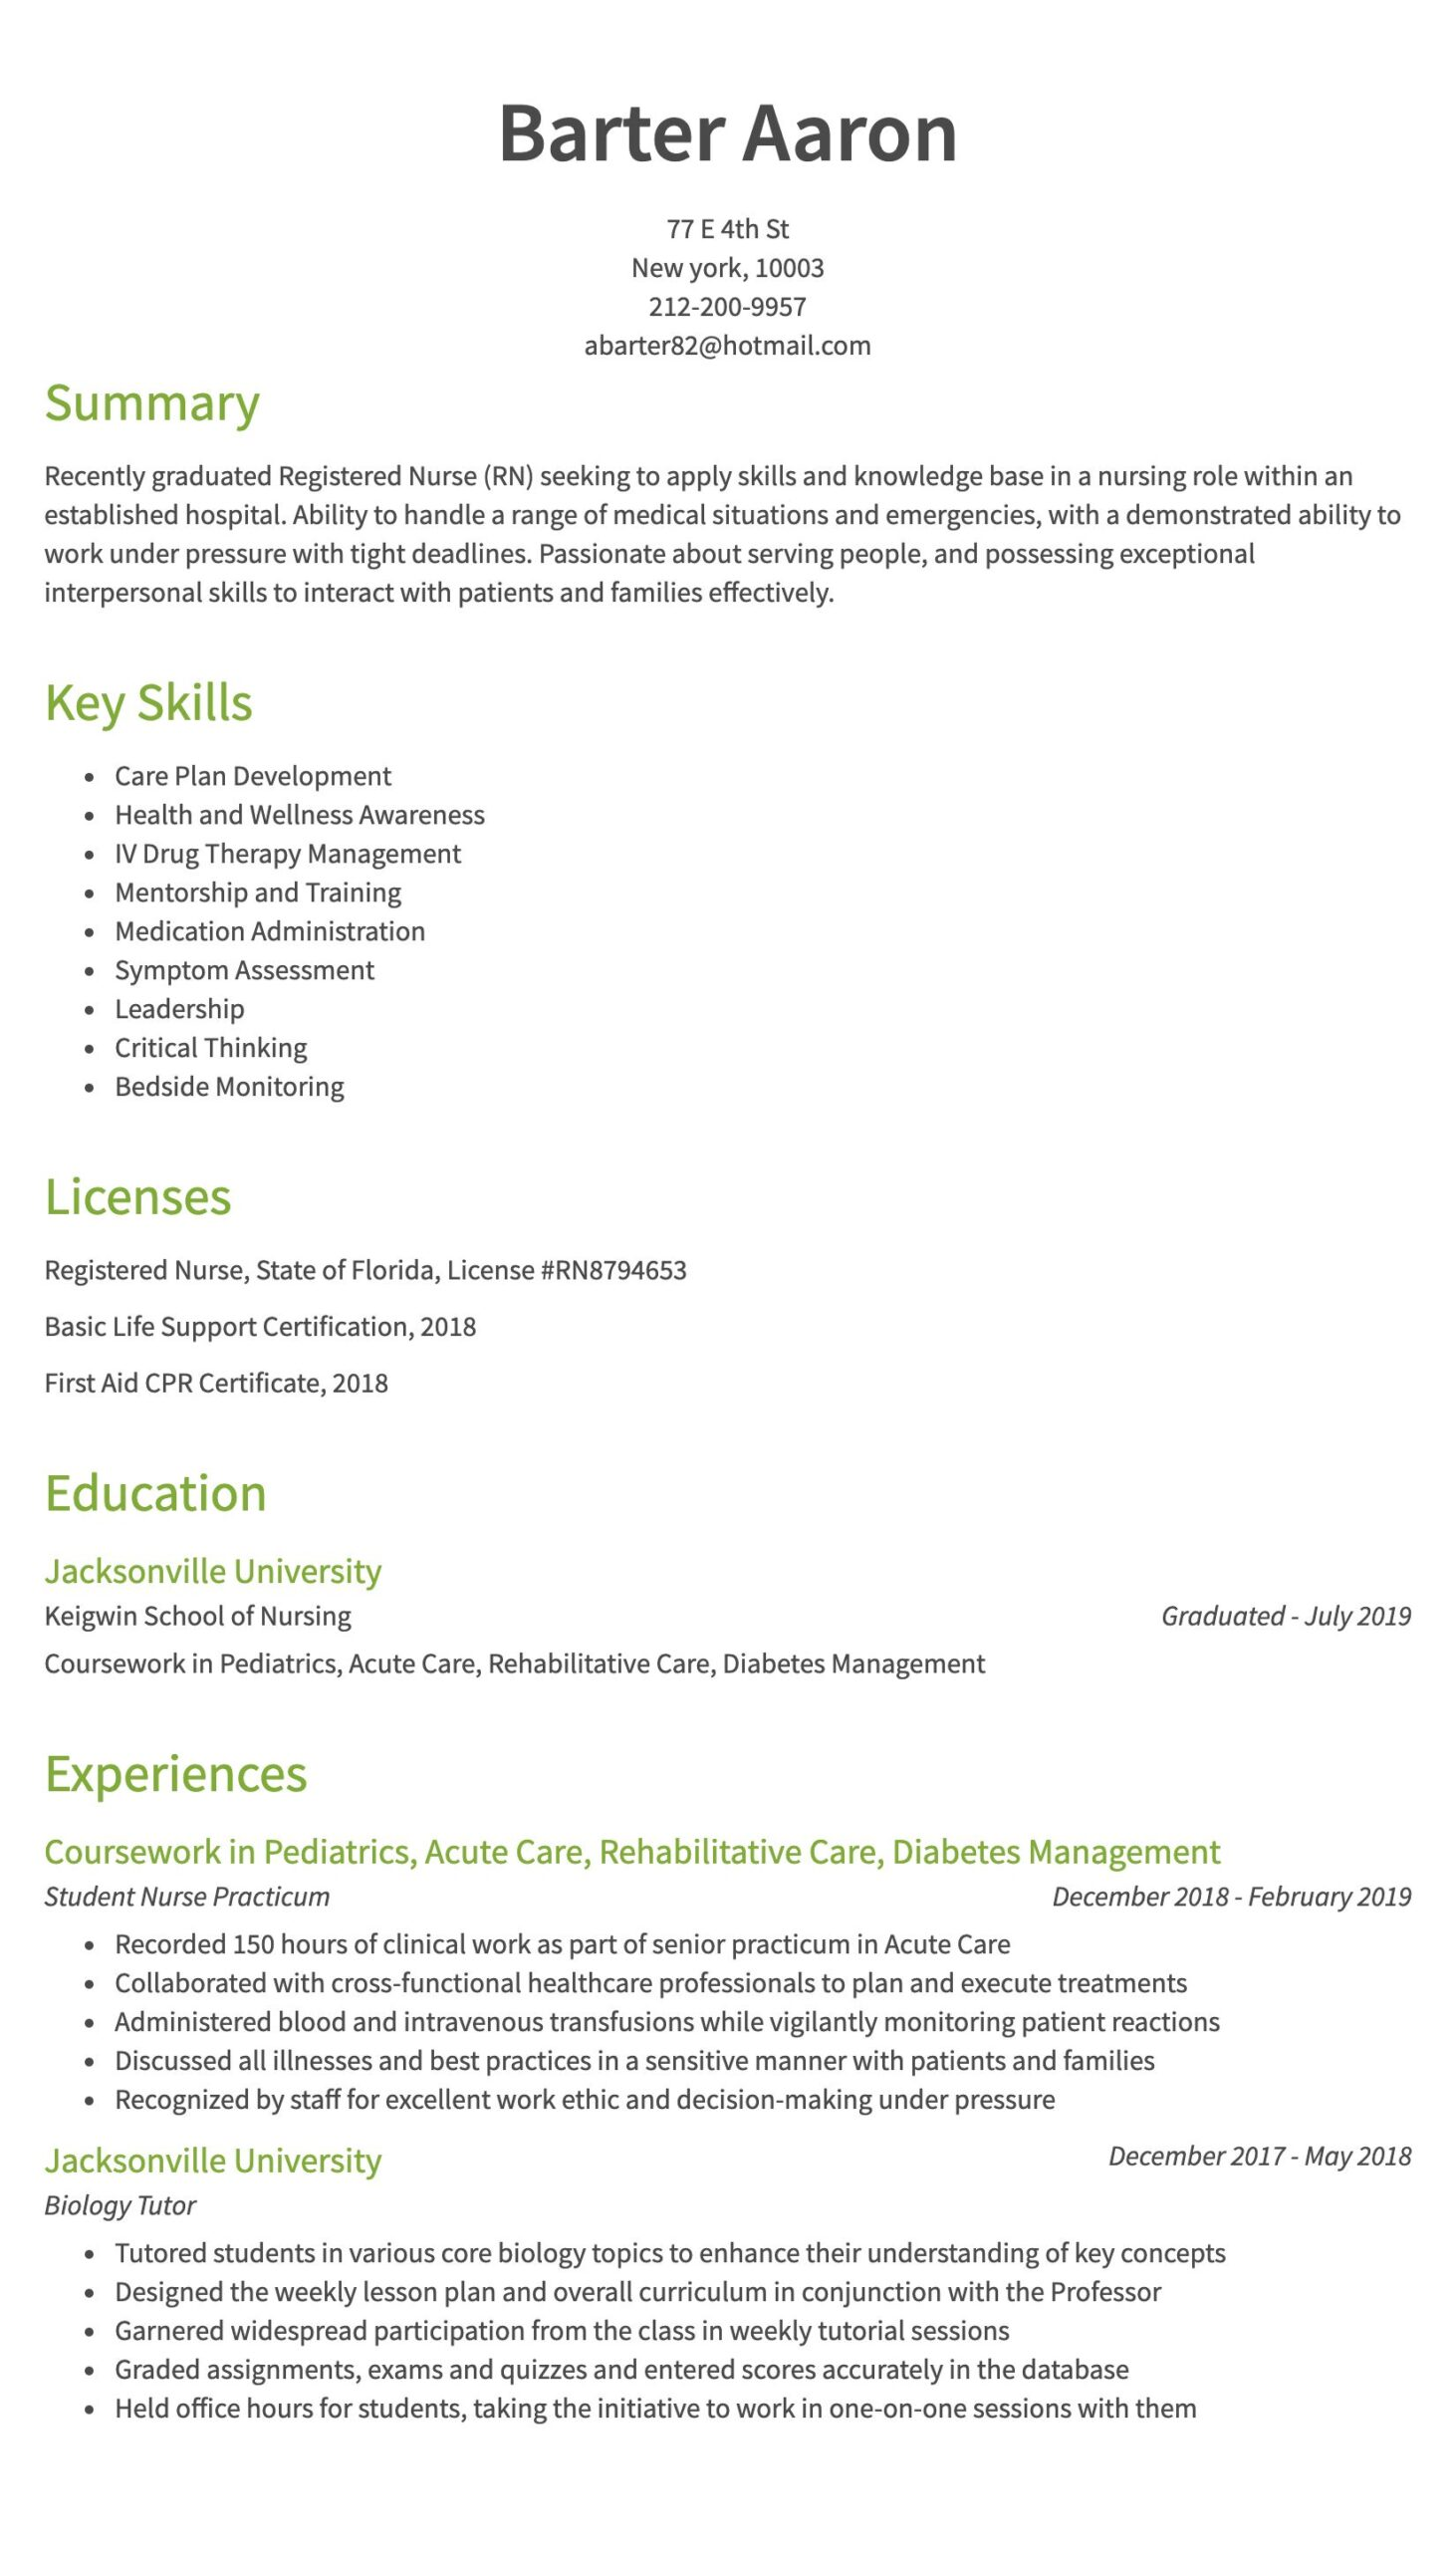 nursing resume examples samples written by rn managers free years of exp cna objective Resume Free Nursing Resume Examples